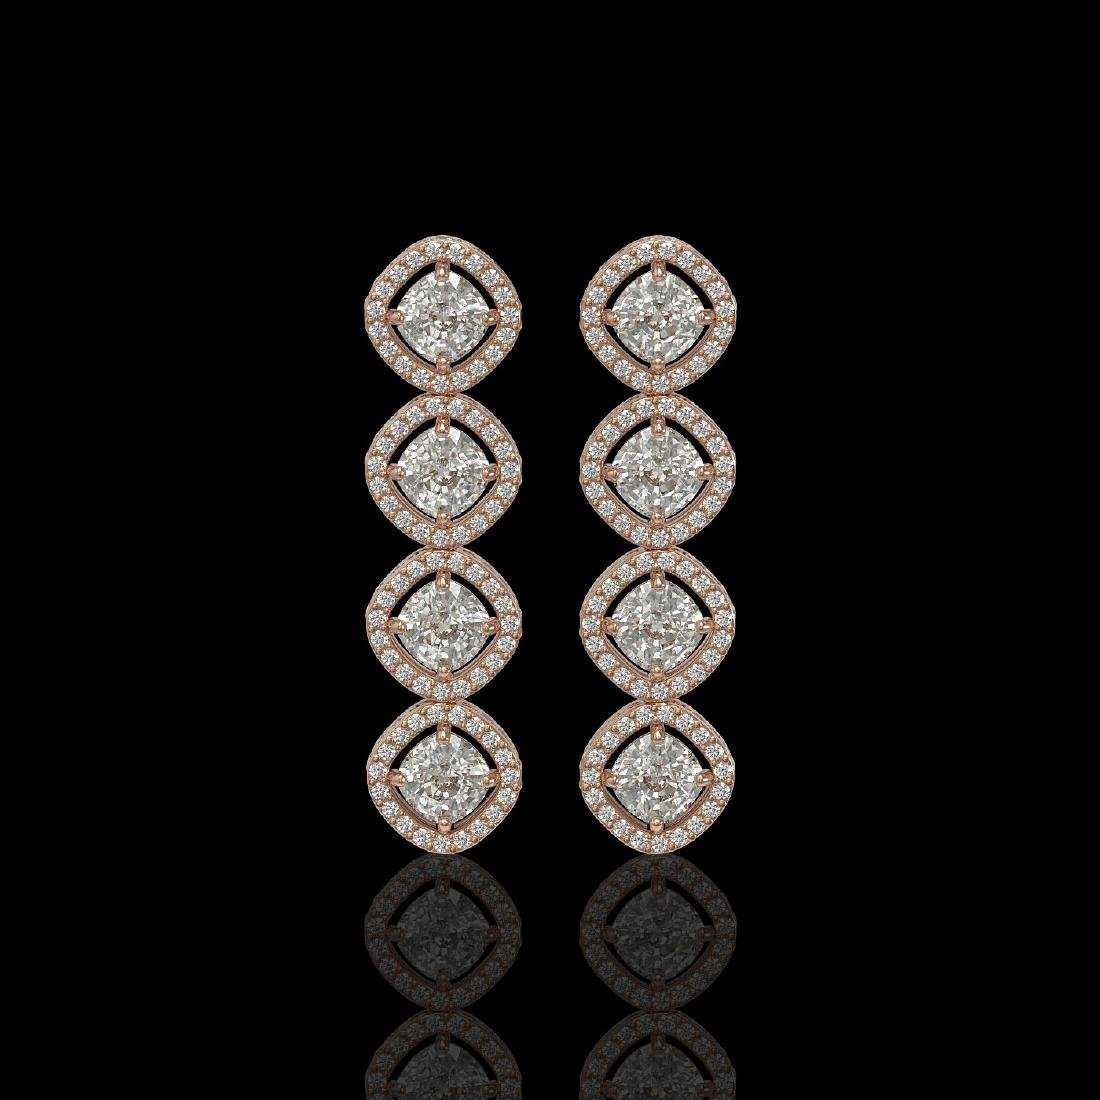 5.28 CTW Cushion Cut Diamond Designer Earrings 18K Rose